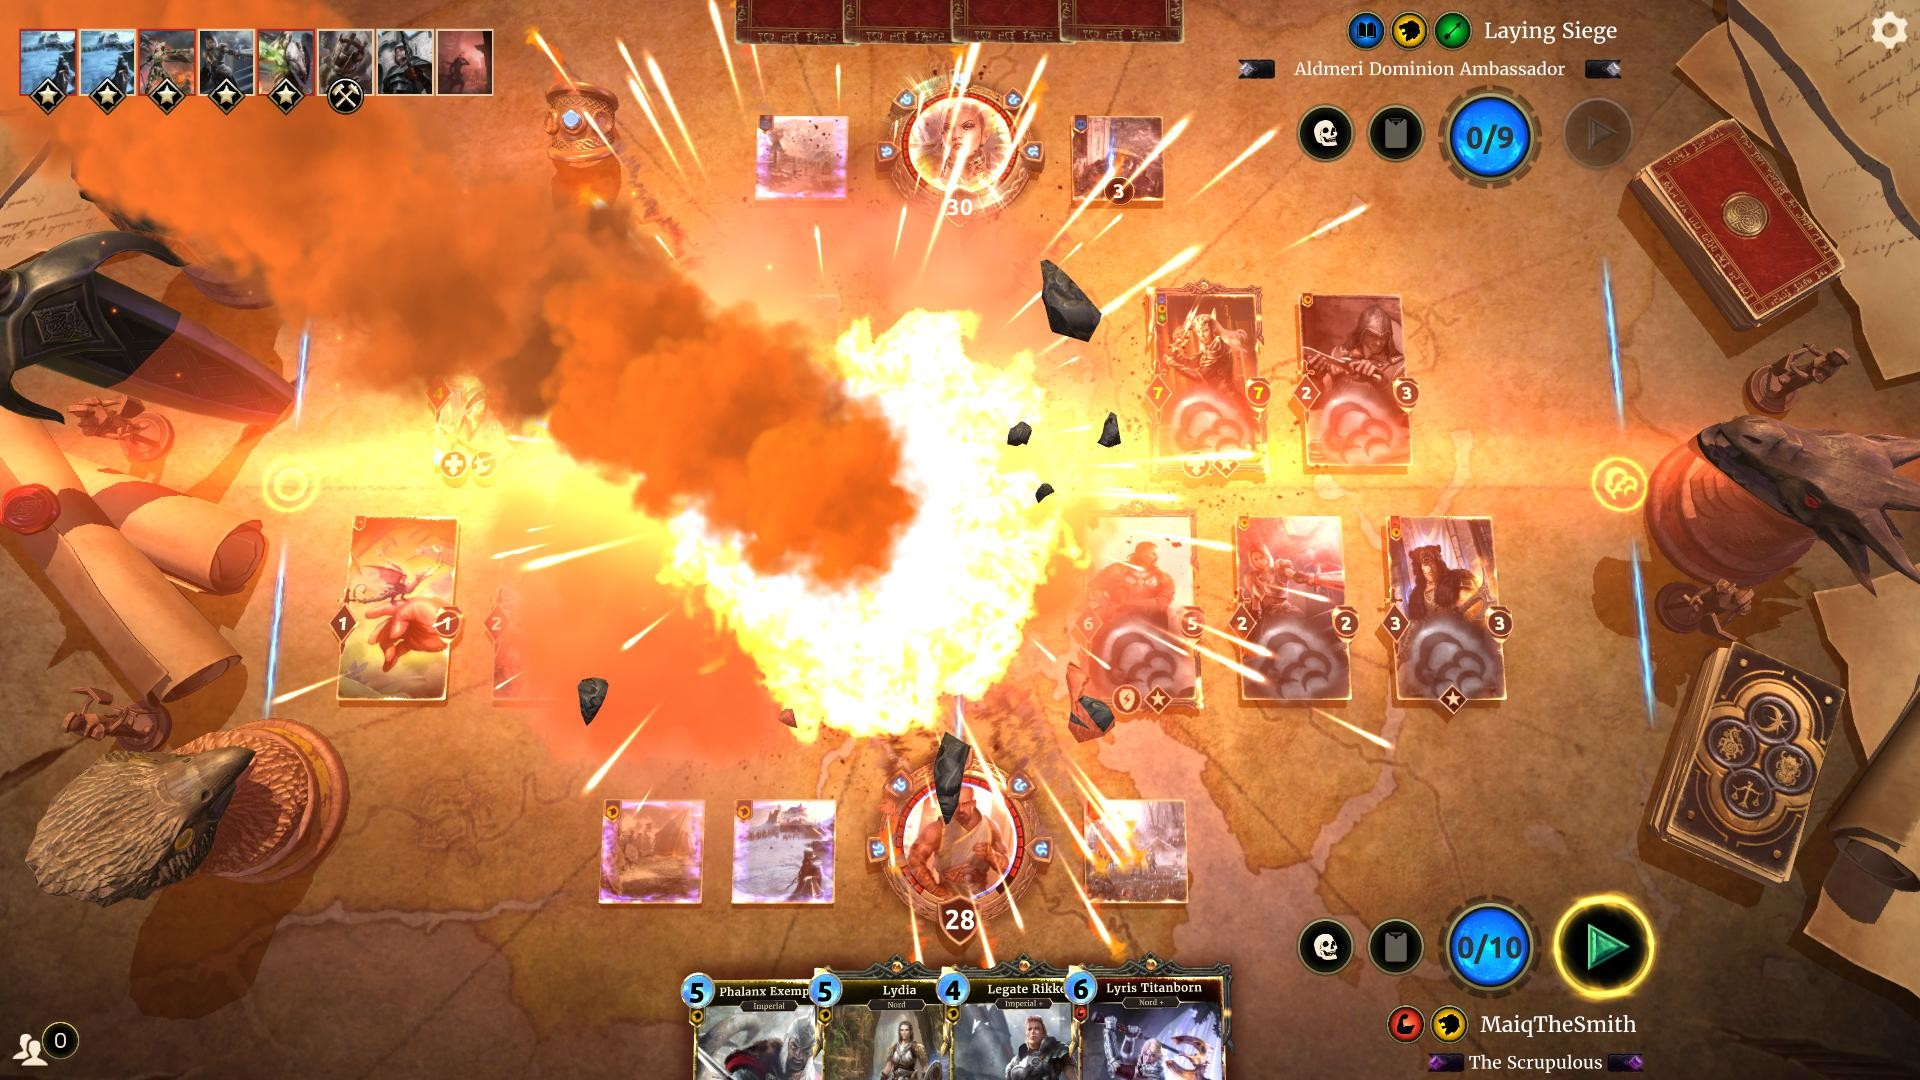 The Elder Scrolls: Legends Gameplay Screenshot 1